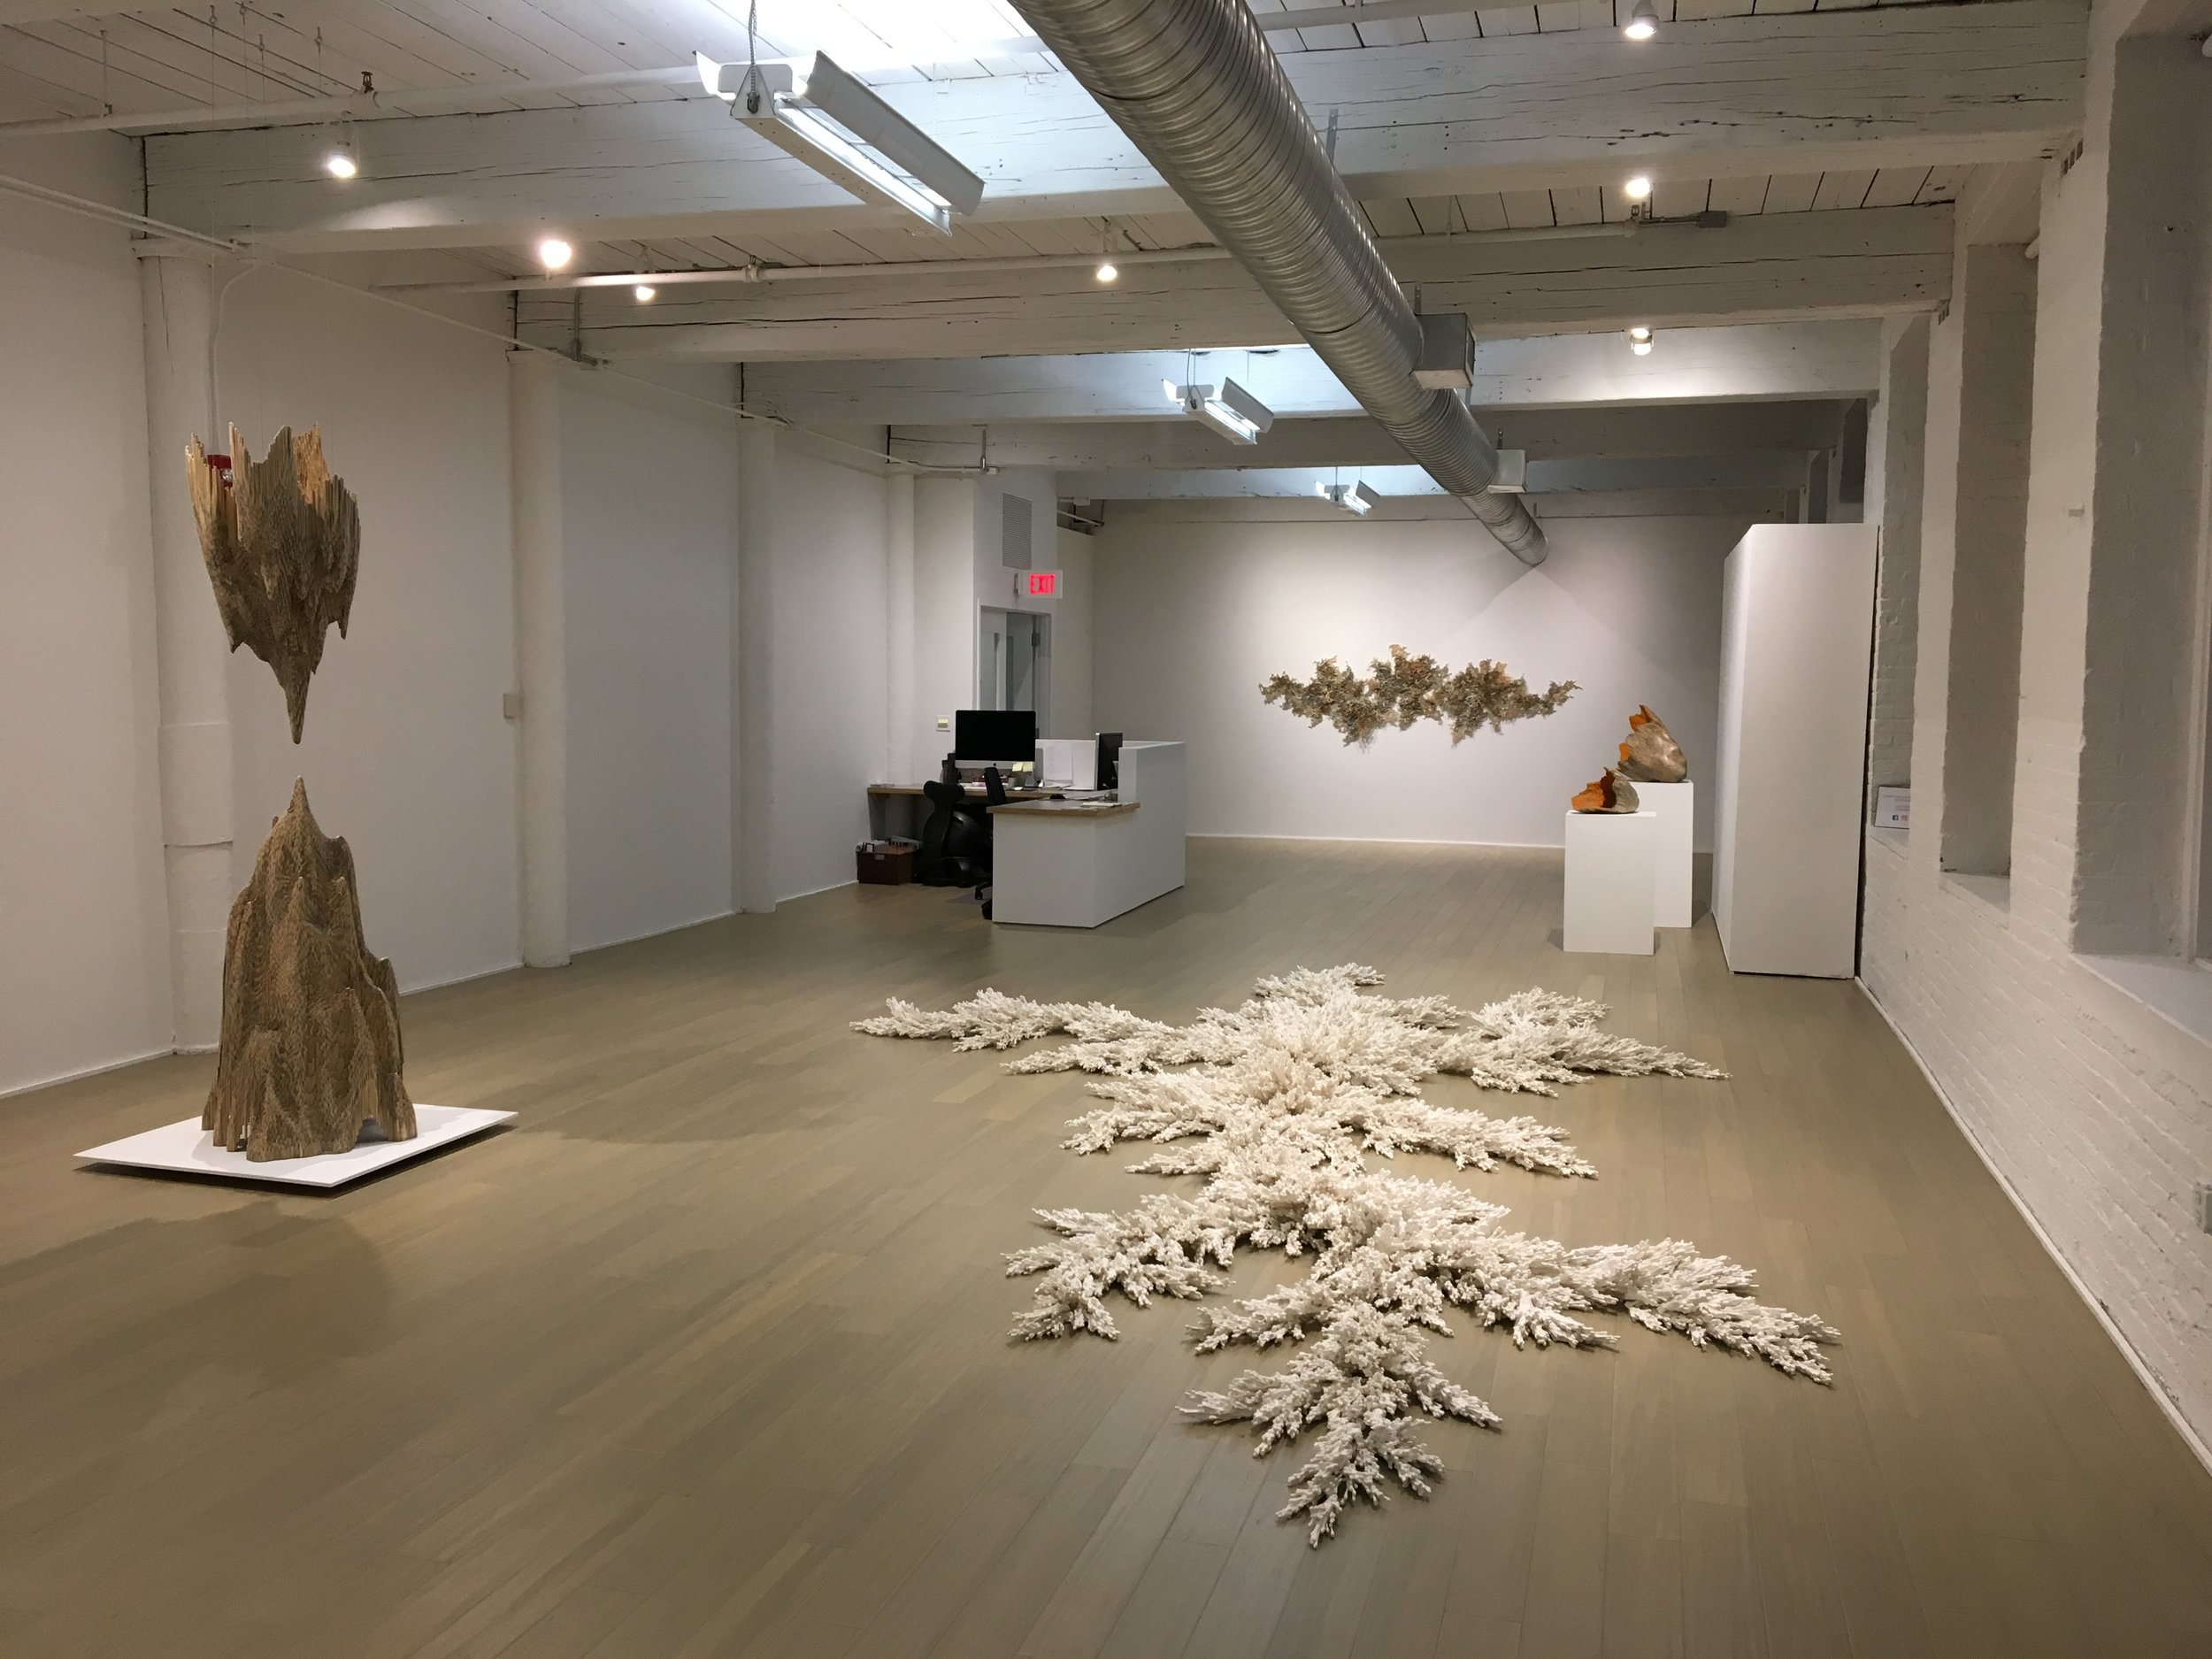 A unique installation for the show, Dendrite, is made of q-tips gathered together and covered in plaster.  The installation covered 22 feet of the gallery floorspace.